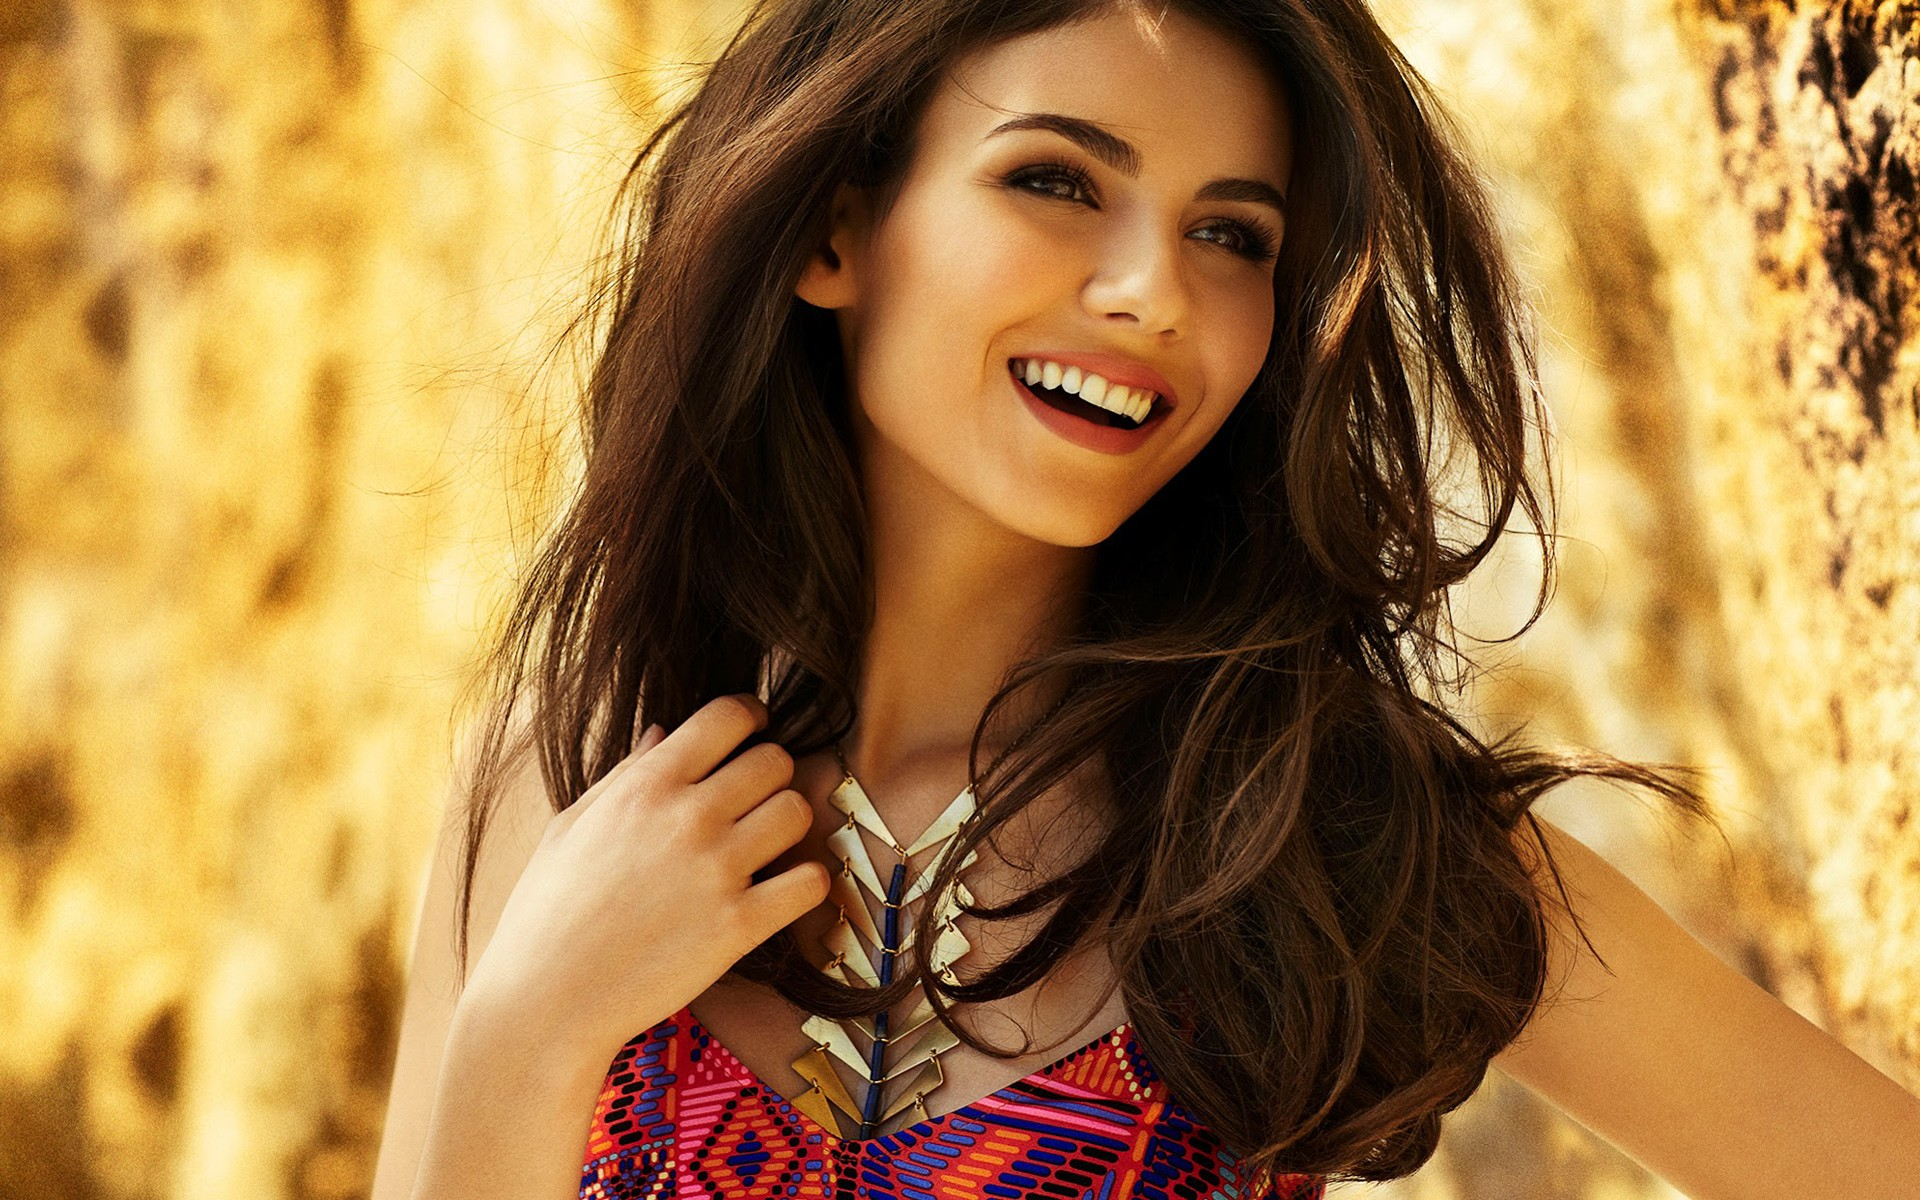 Cute Wallpapers Victoria Justice Smile 15412 Wallpaper Wallpaper hd 1920x1200